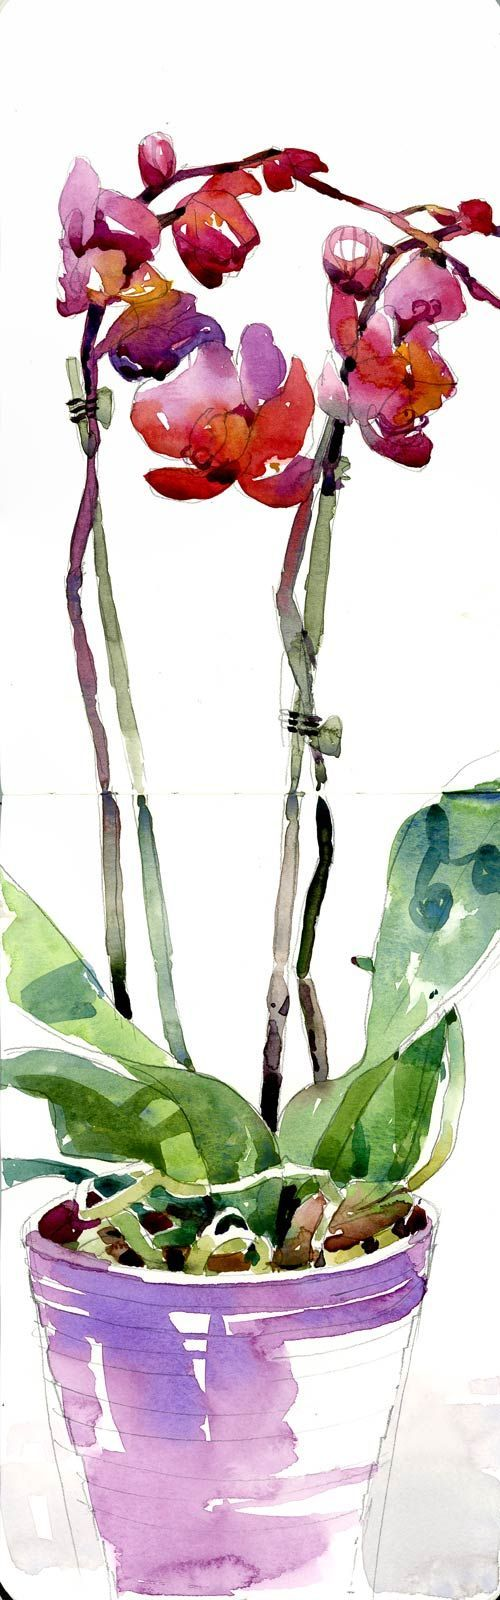 Oh wow! So beautiful! I wish my watercolour game was as good as this! by Shari Blaukopf #art